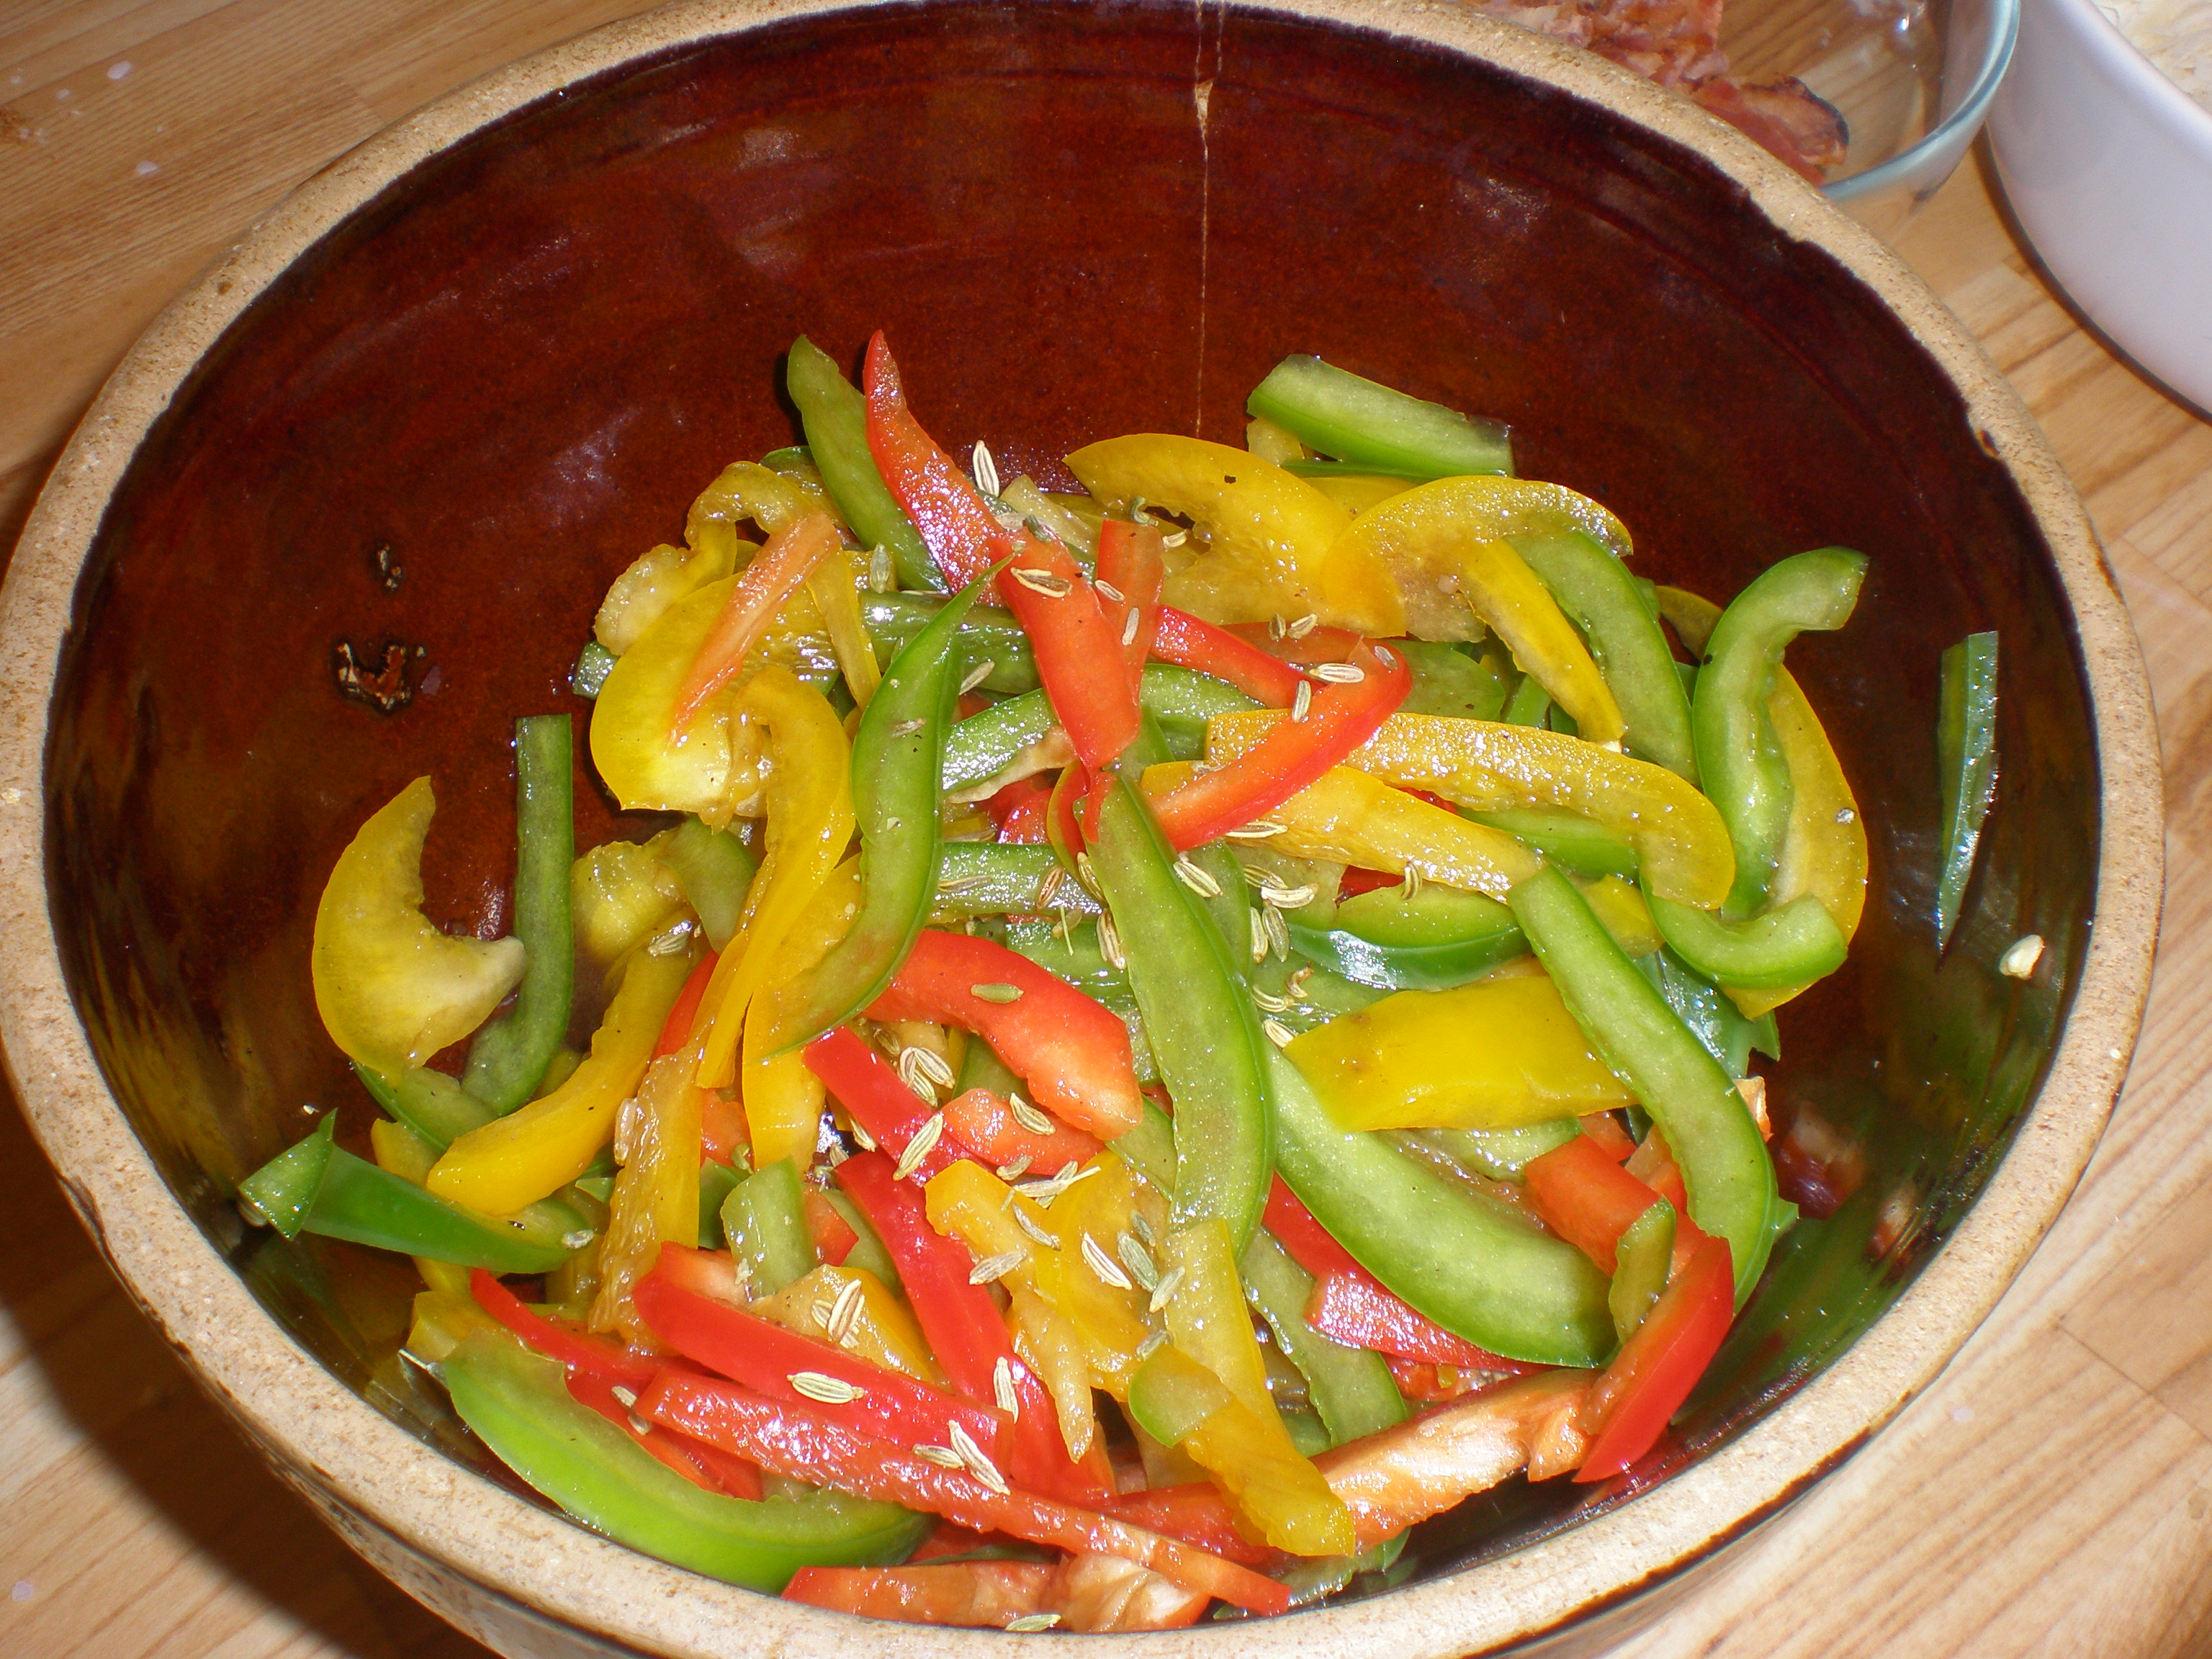 Marinated peppers ready to top a pizza